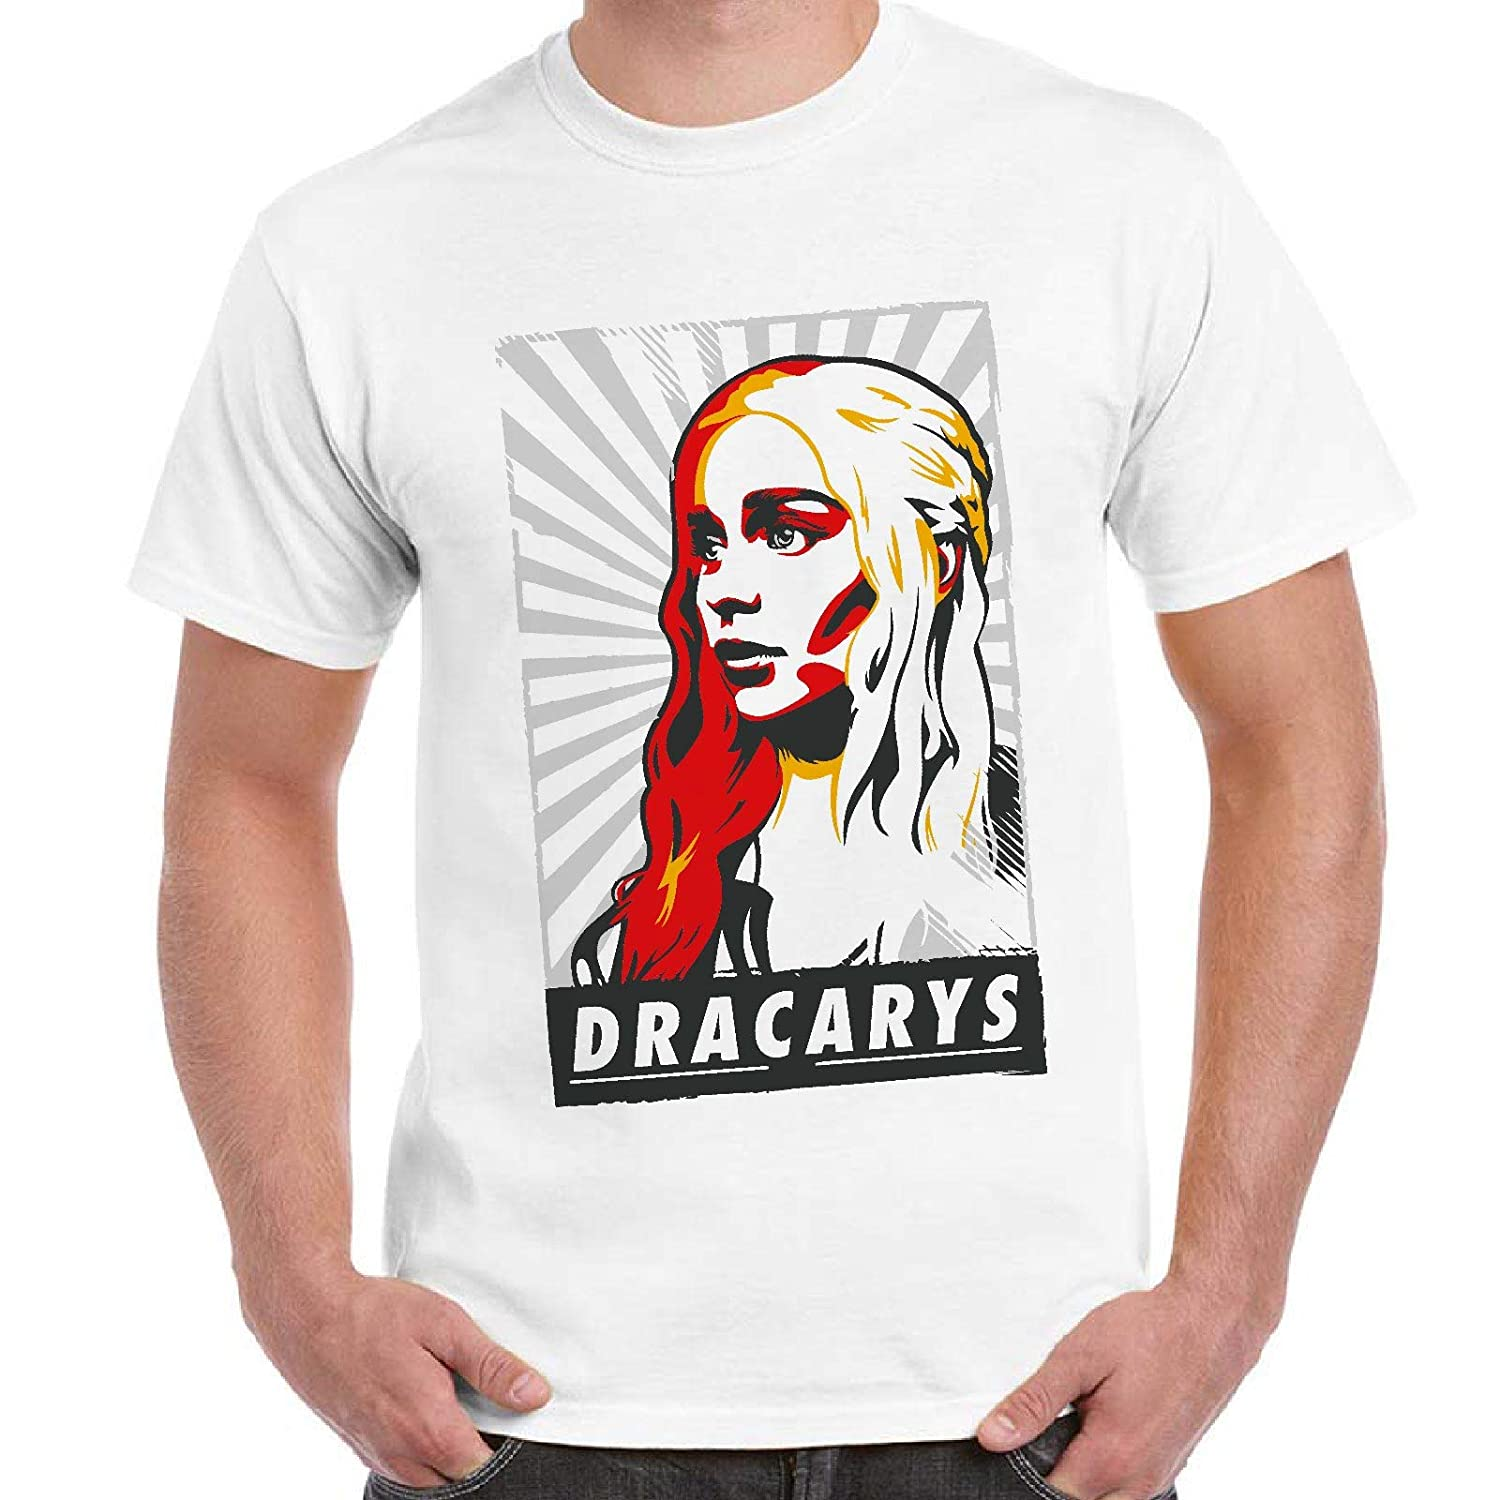 T-Shirt Divertente Uomo Maglietta con Stampa Ironica Game of Thrones Daenerys Dracarys